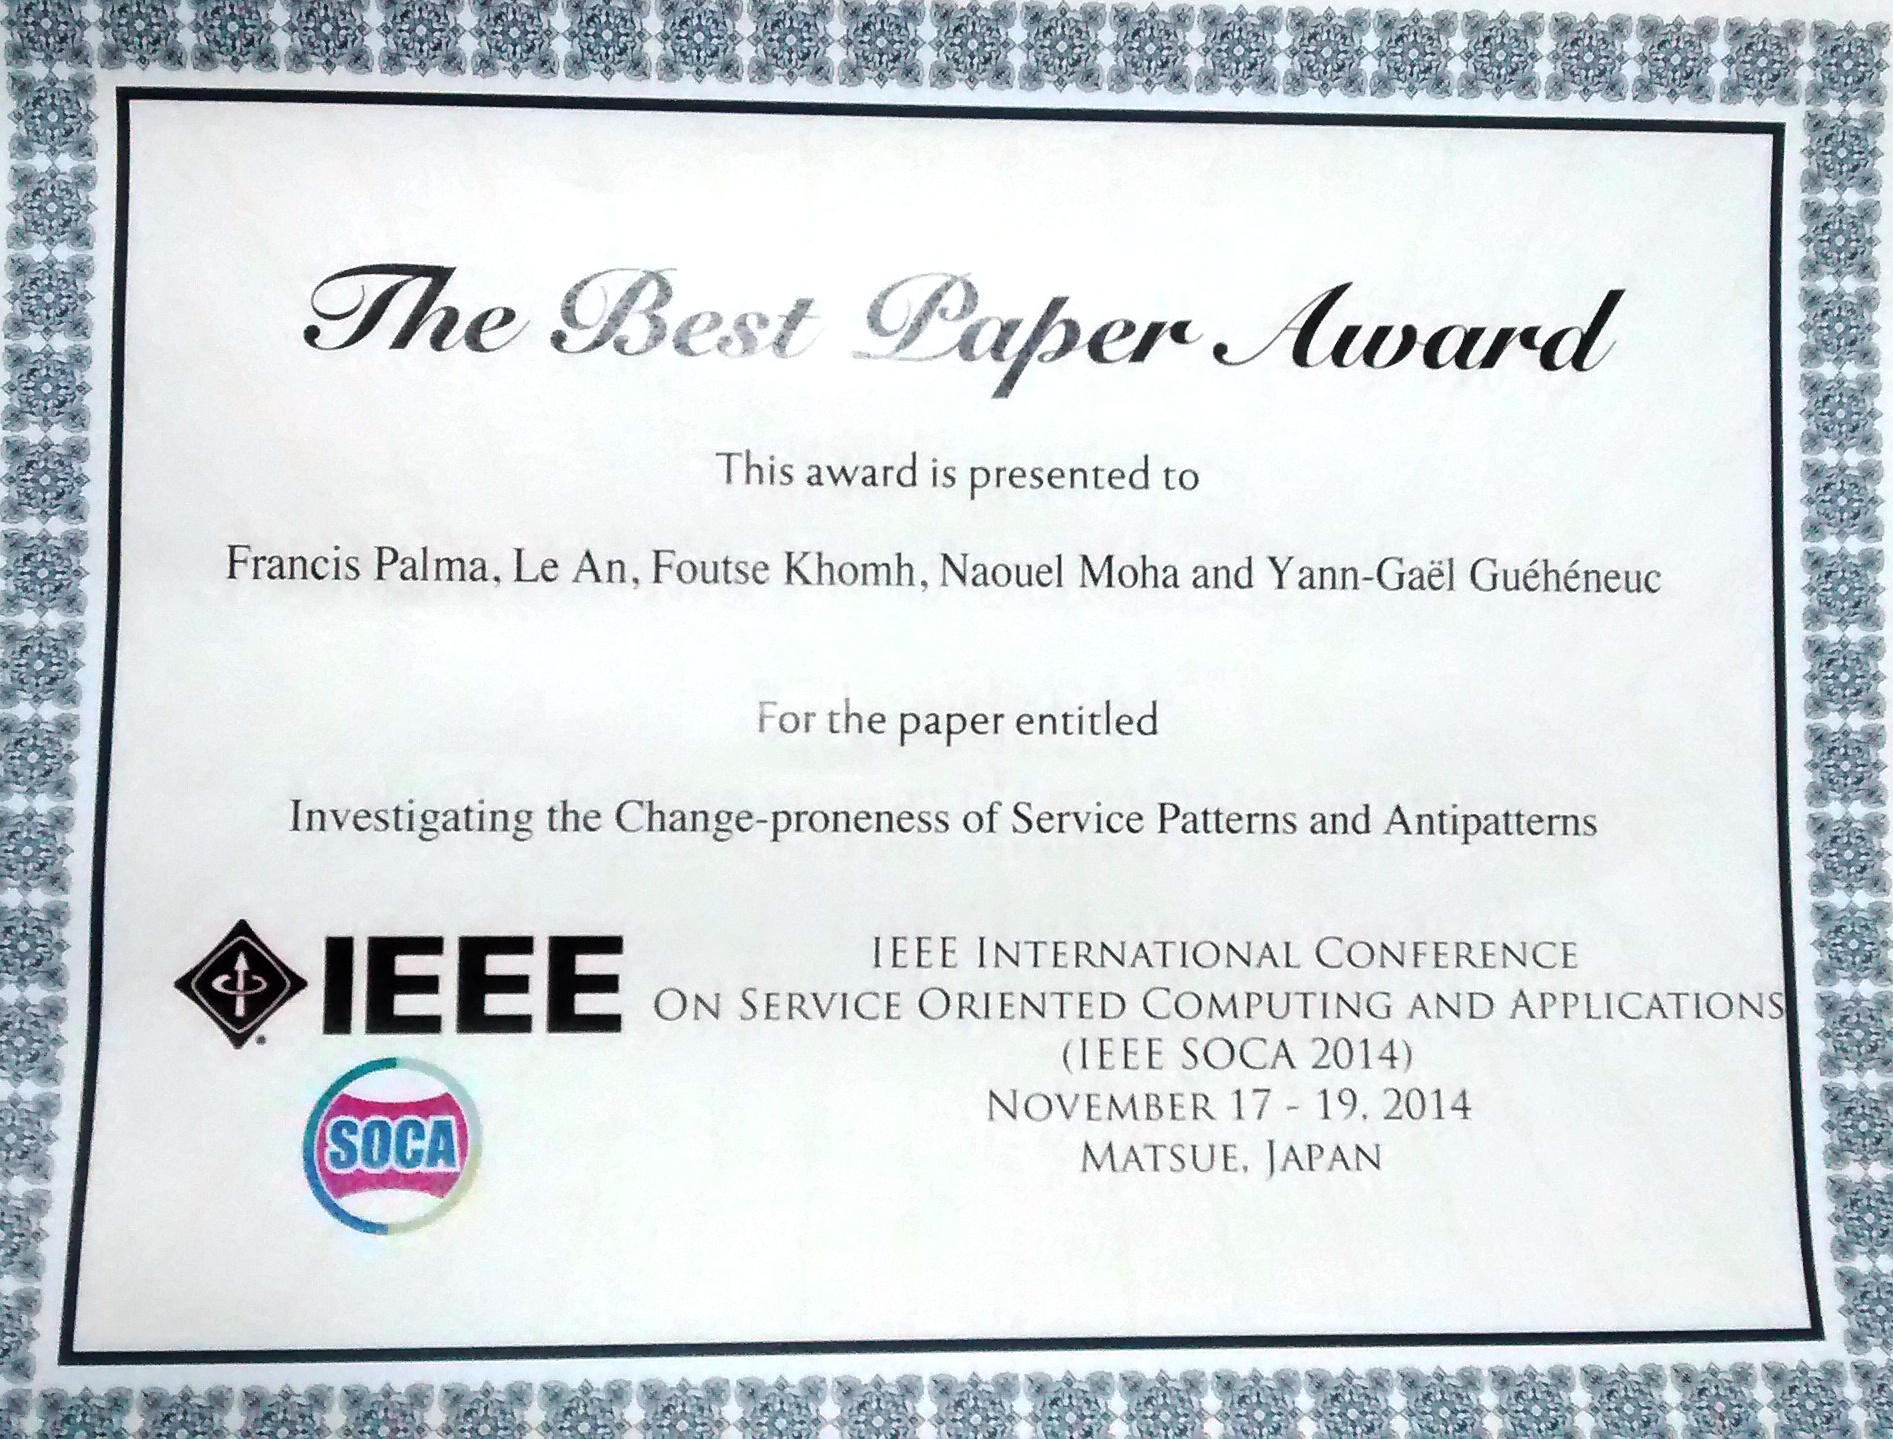 ieee research paper computer science Ieee research paper for computer science victorianism modernism compare contrast essay essay essential kirk russell selected isb video essay admission.